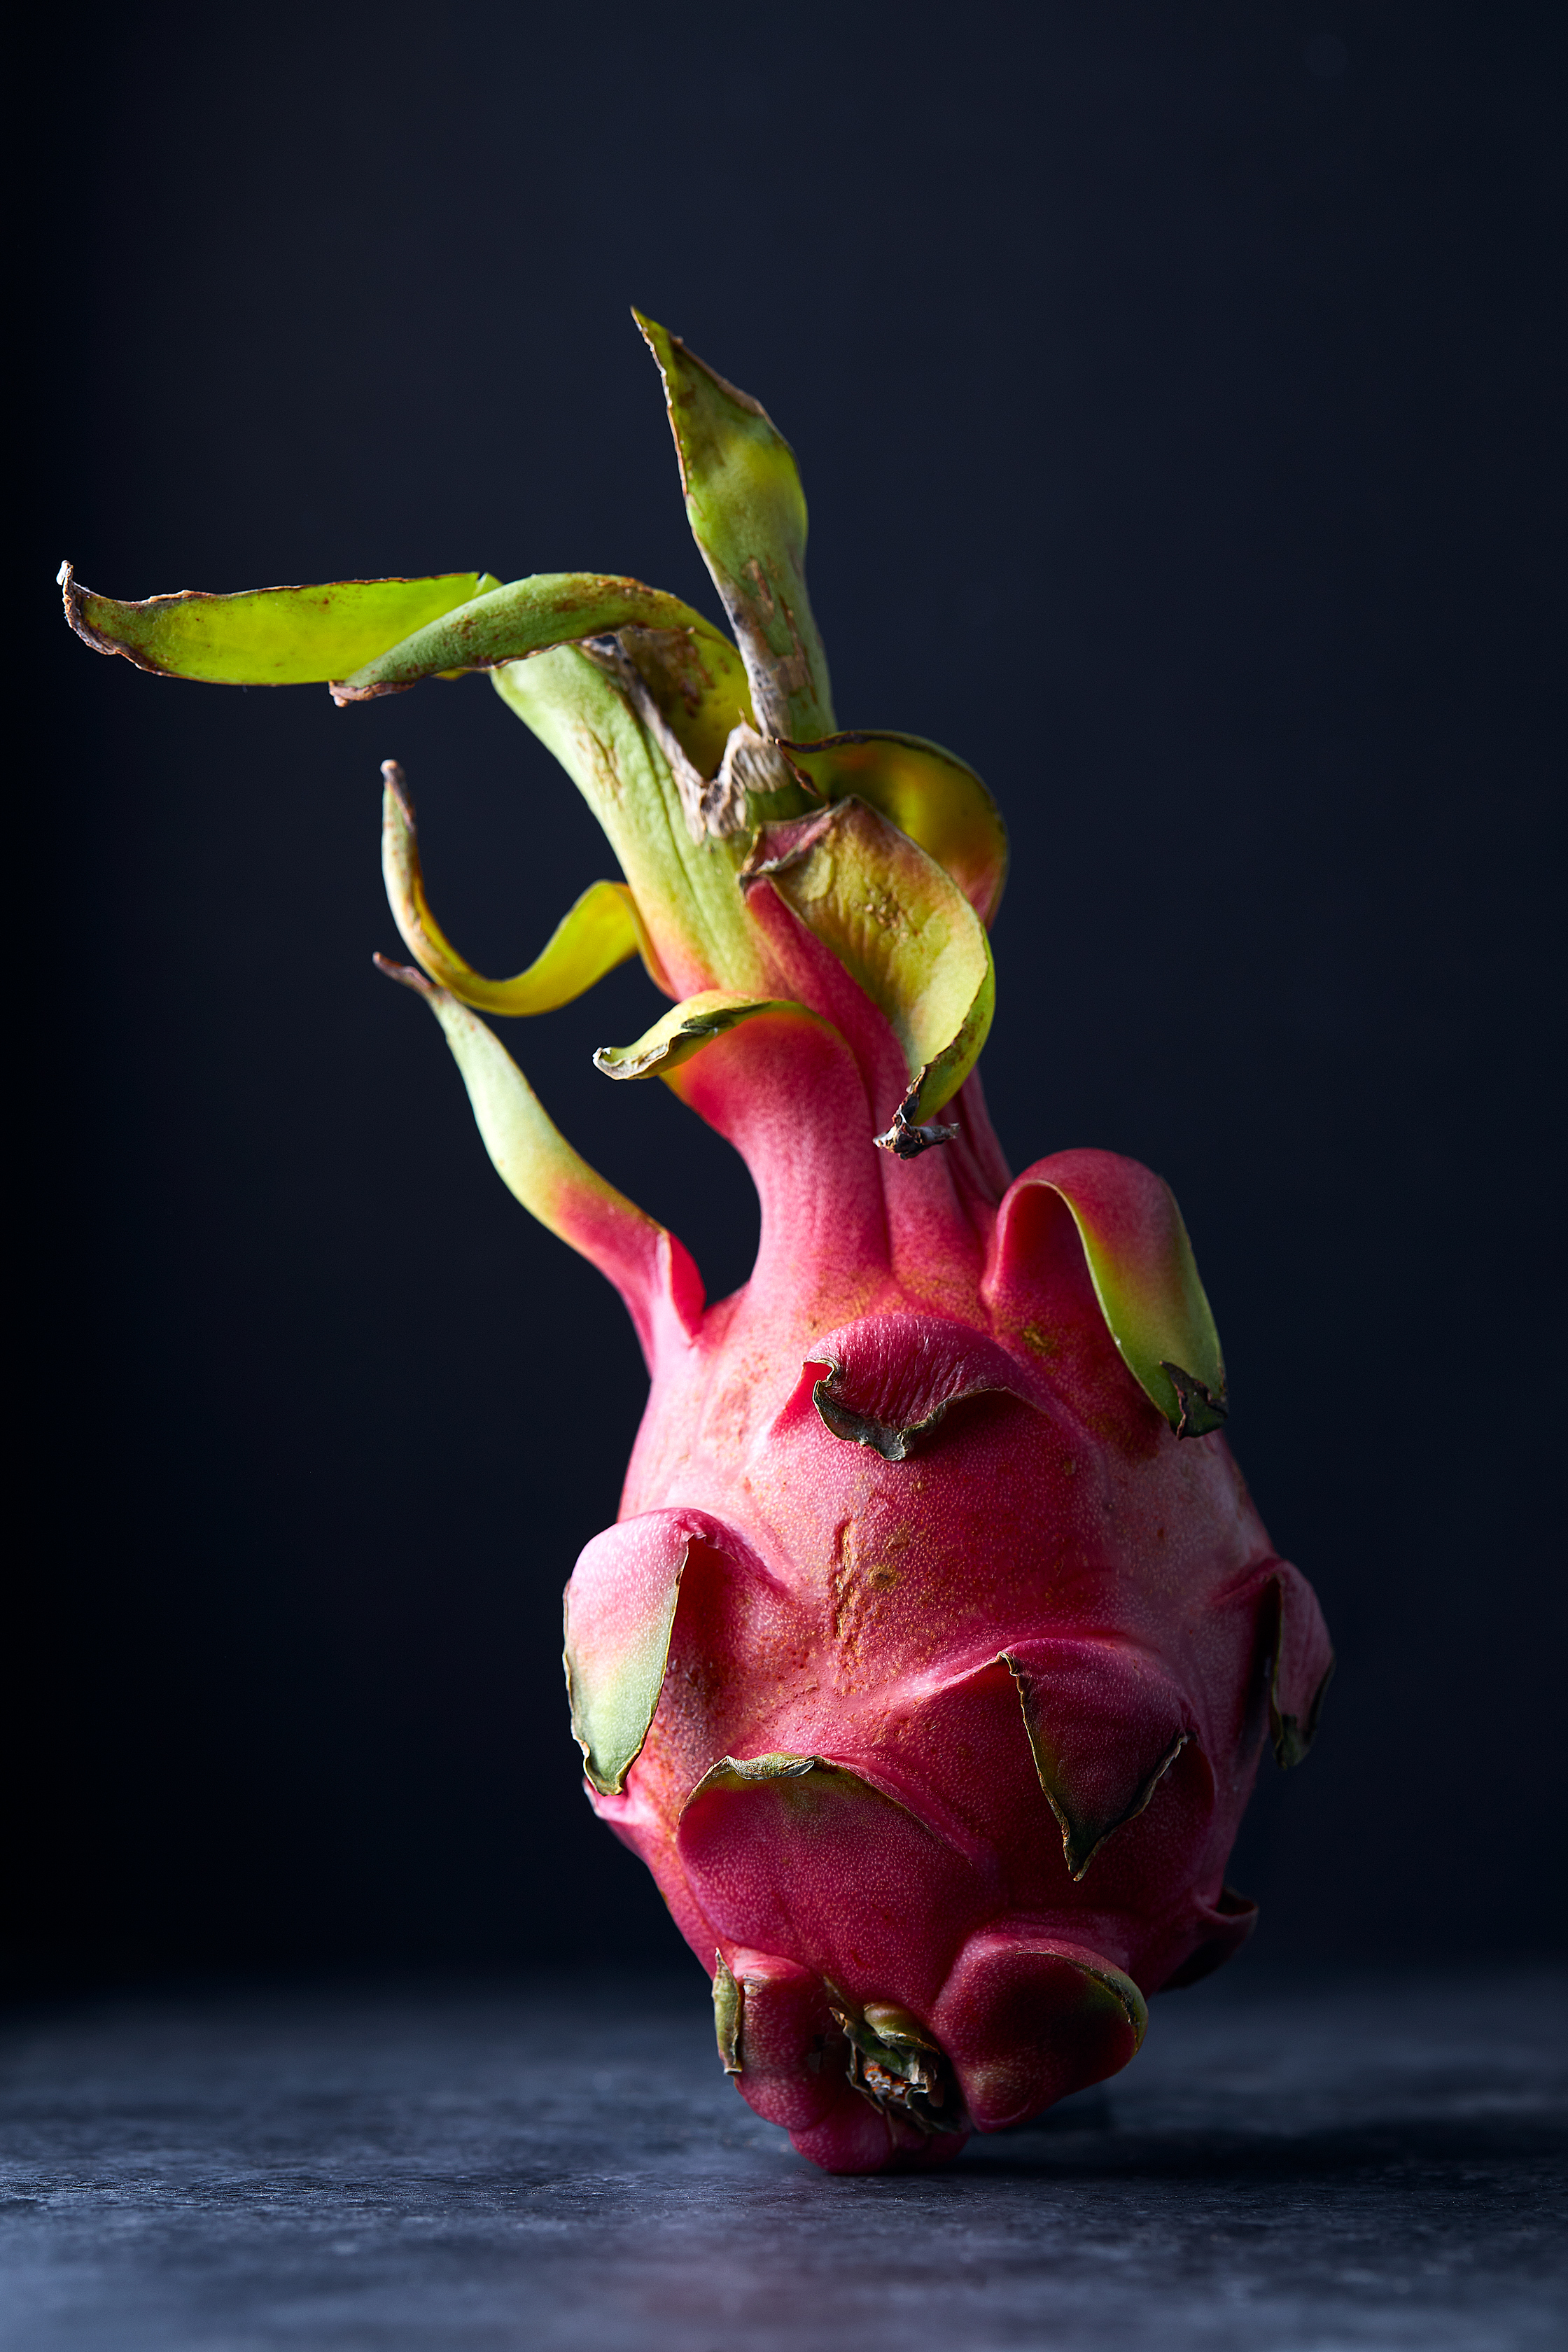 Coffee-and-Dragonfruit-56-web.jpg